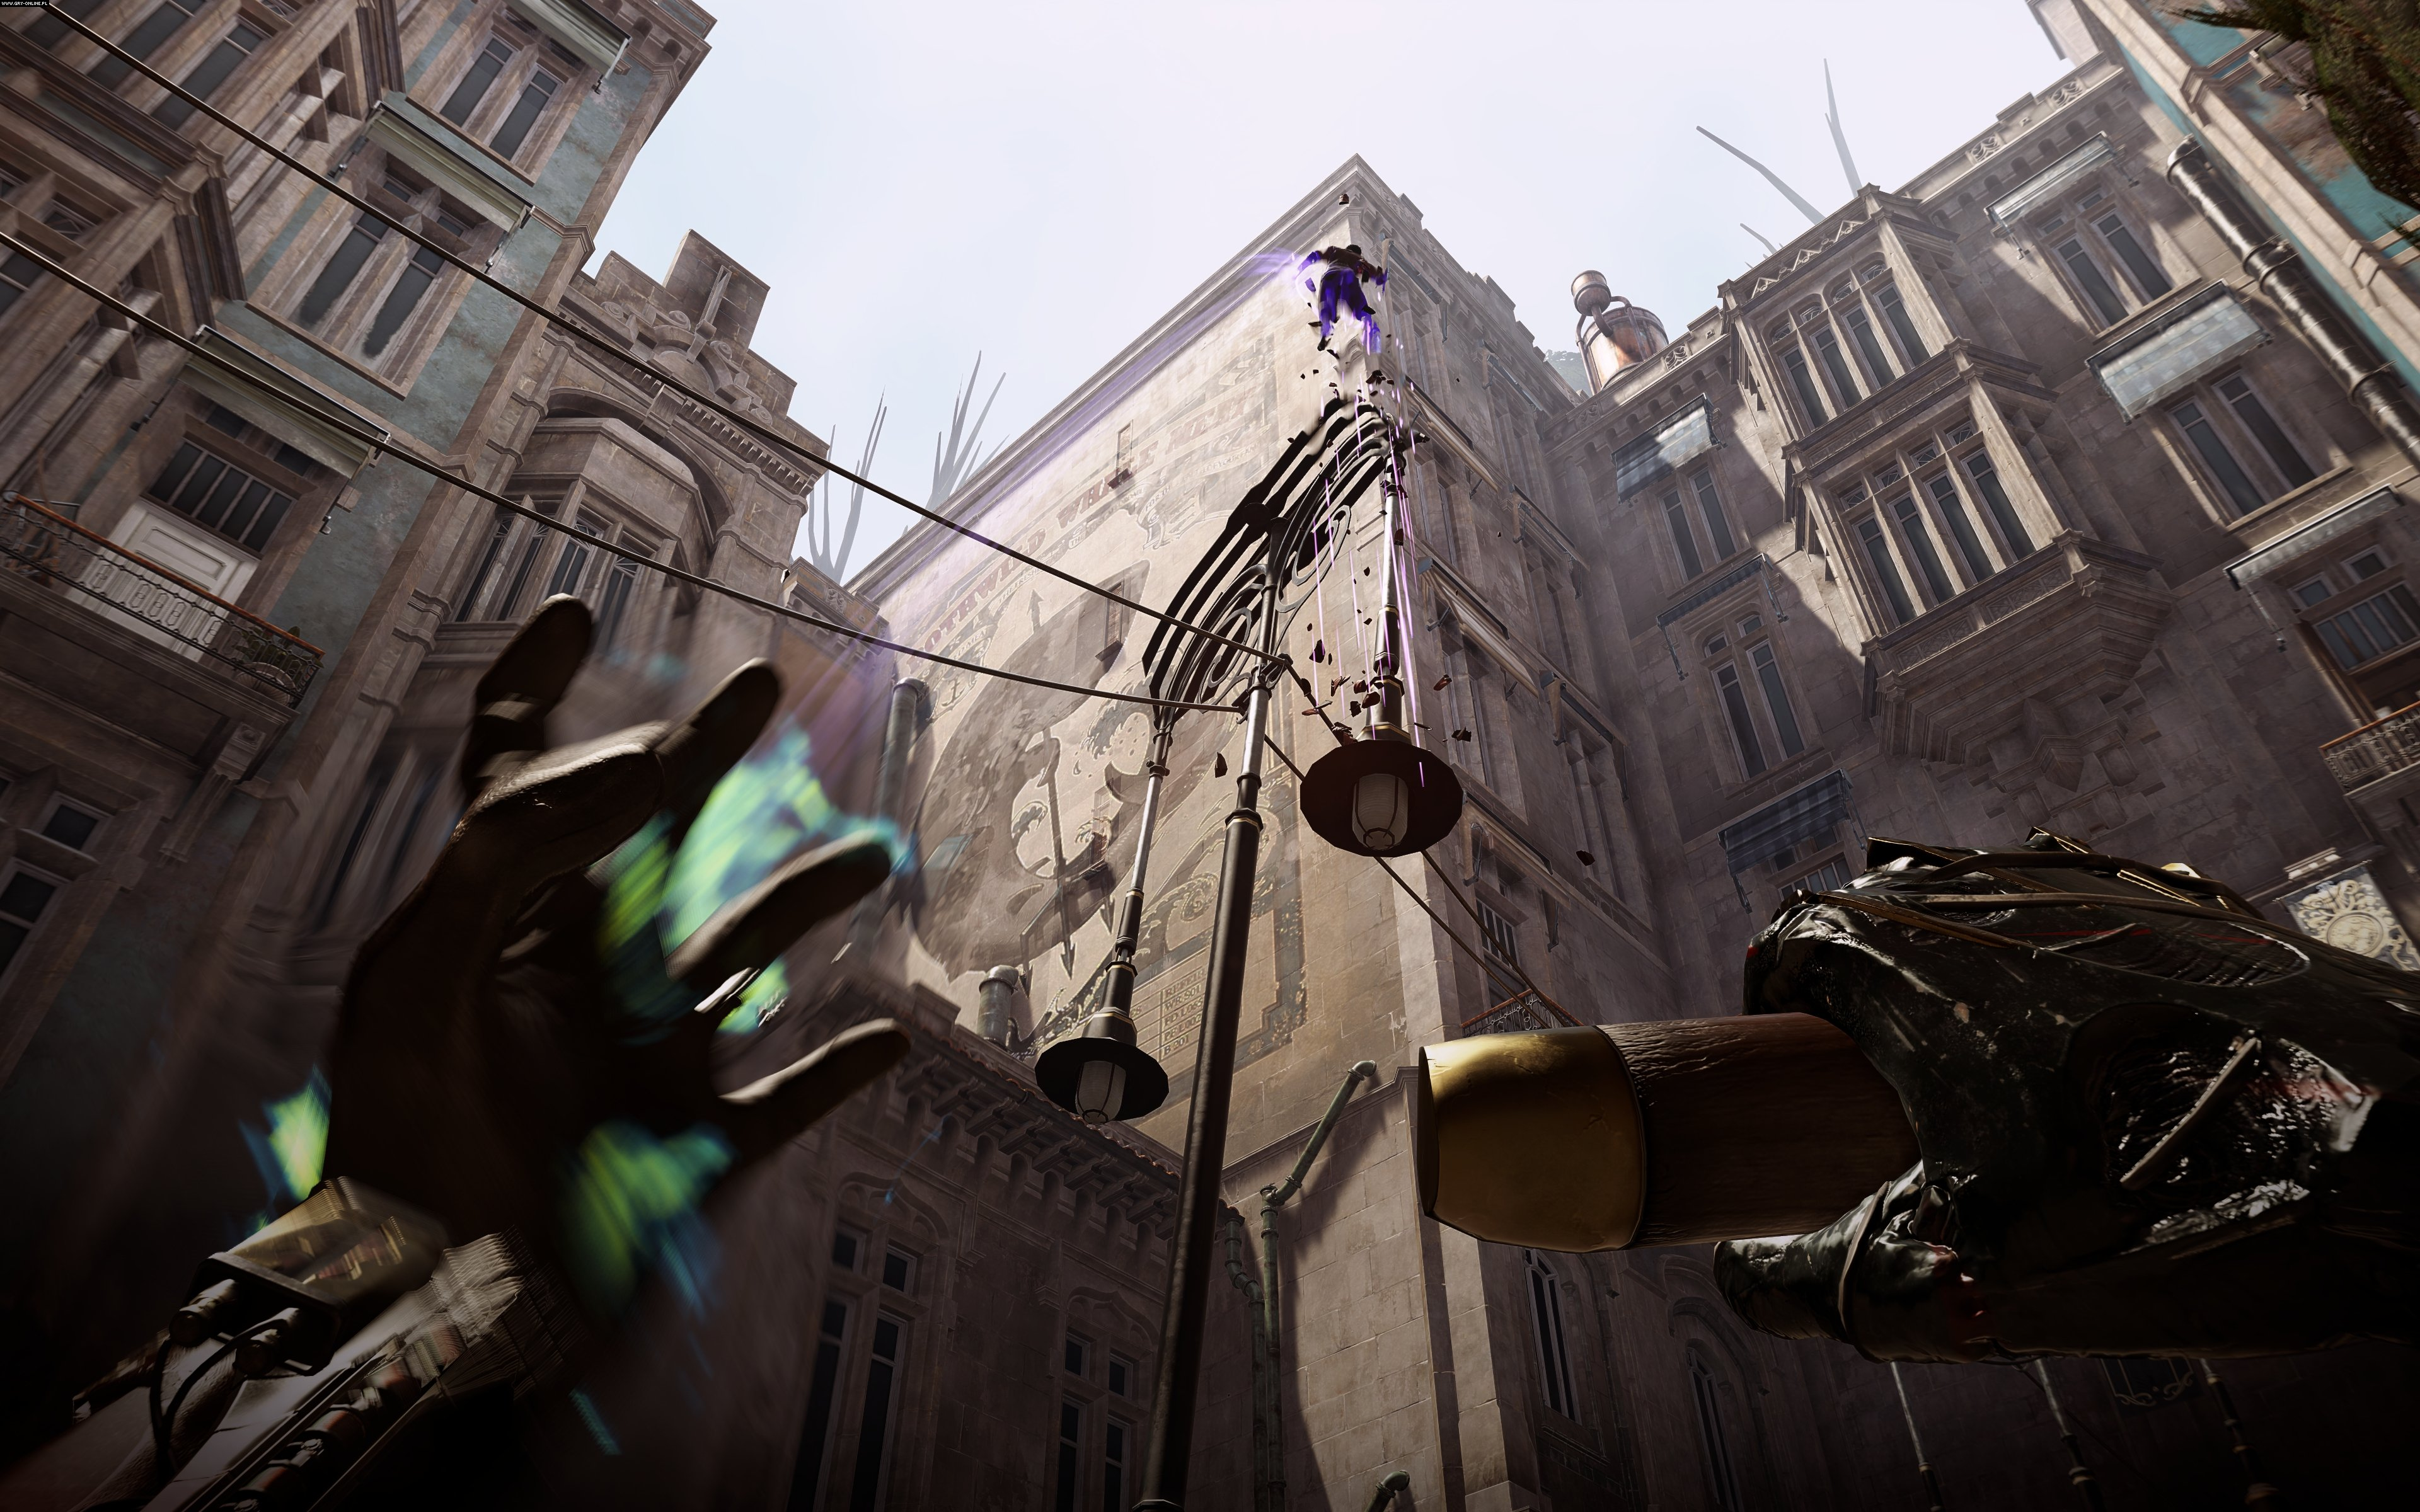 Dishonored: Death of the Outsider PC, PS4, XONE Games Image 9/13, Arkane Studios, Bethesda Softworks